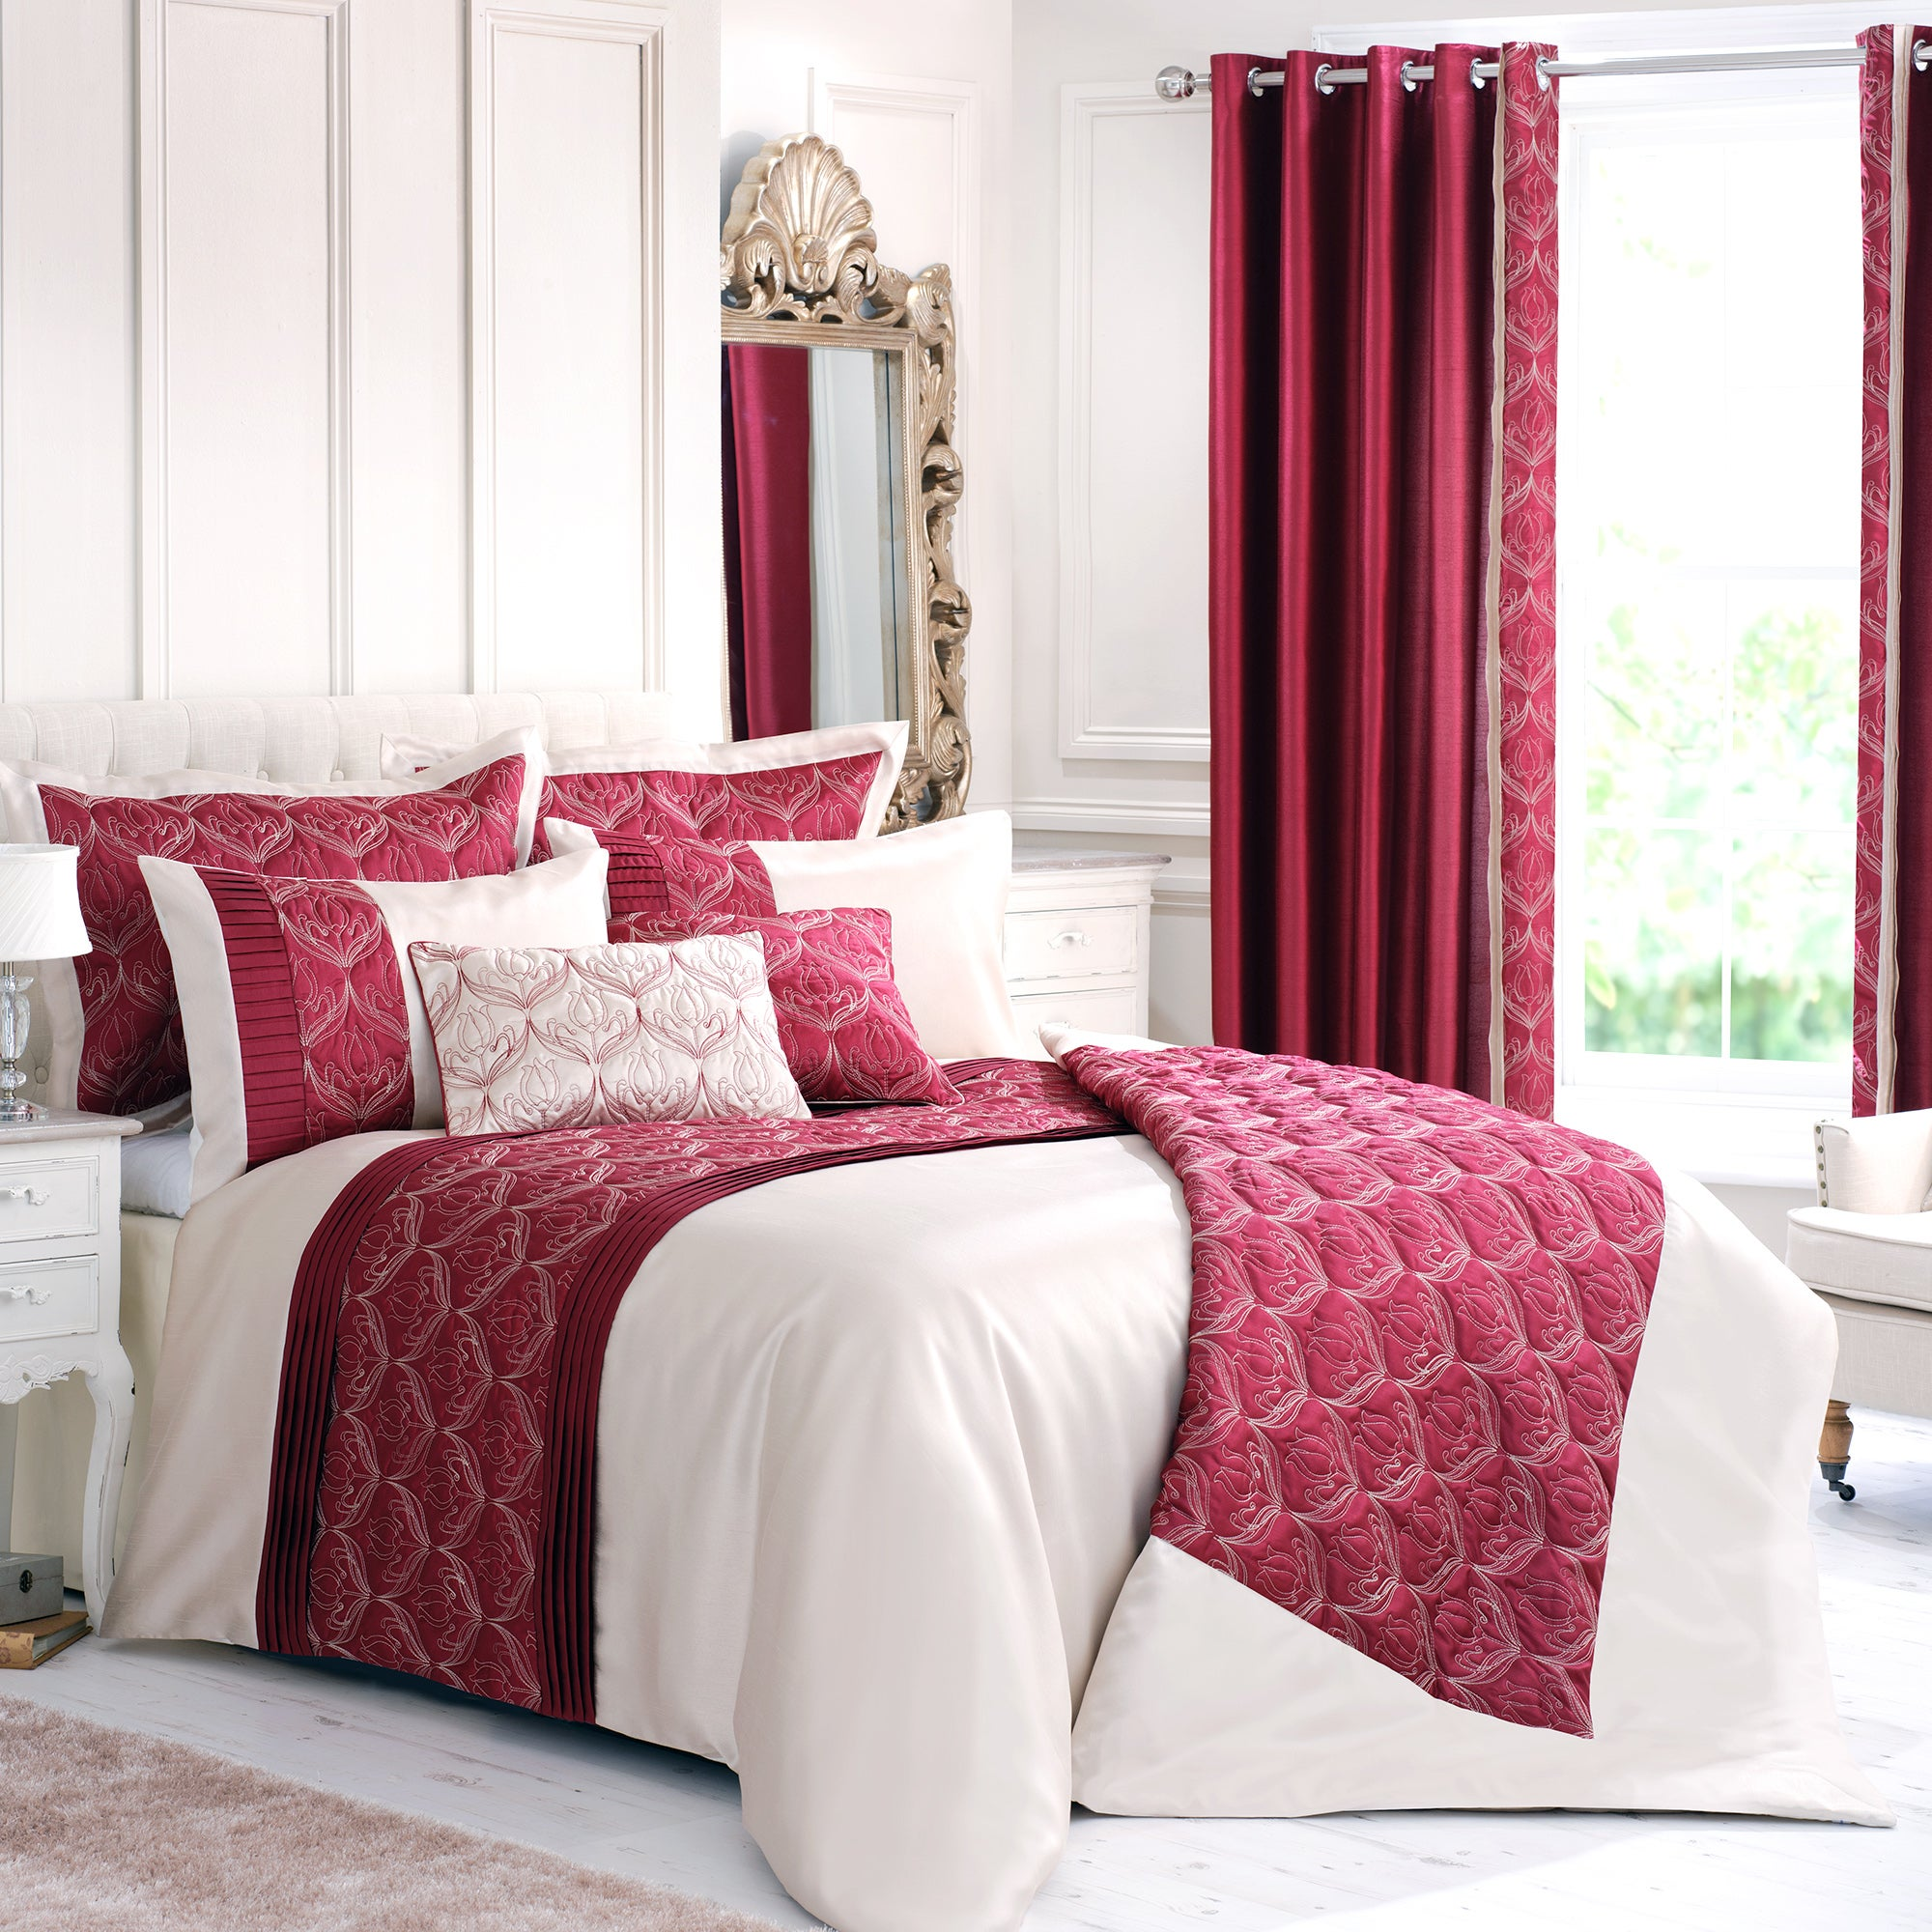 red lalique collection duvet cover. Black Bedroom Furniture Sets. Home Design Ideas